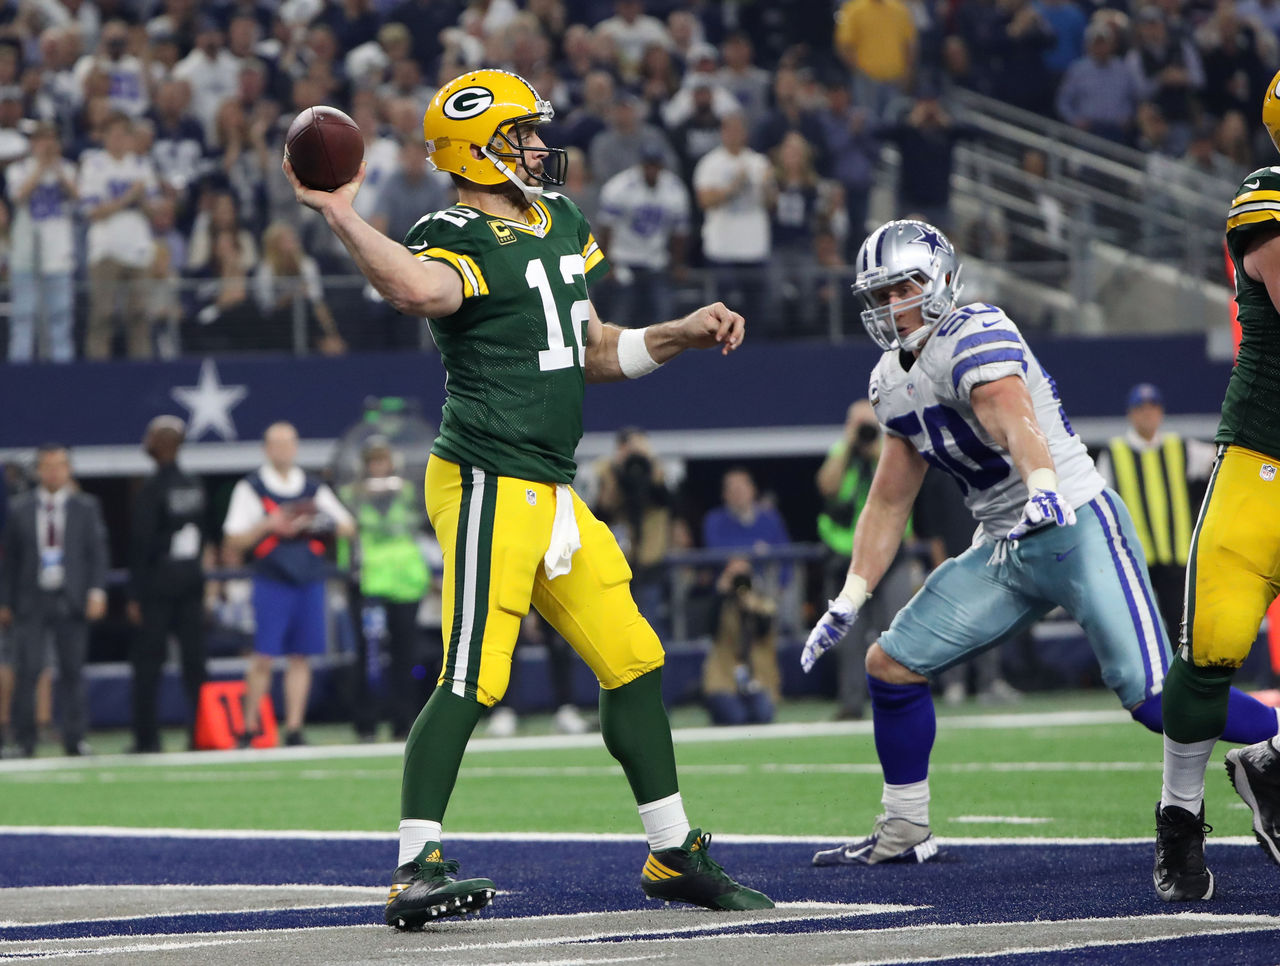 Cropped 2017 01 15t233006z 1166591221 nocid rtrmadp 3 nfl nfc divisional green bay packers at dallas cowboys